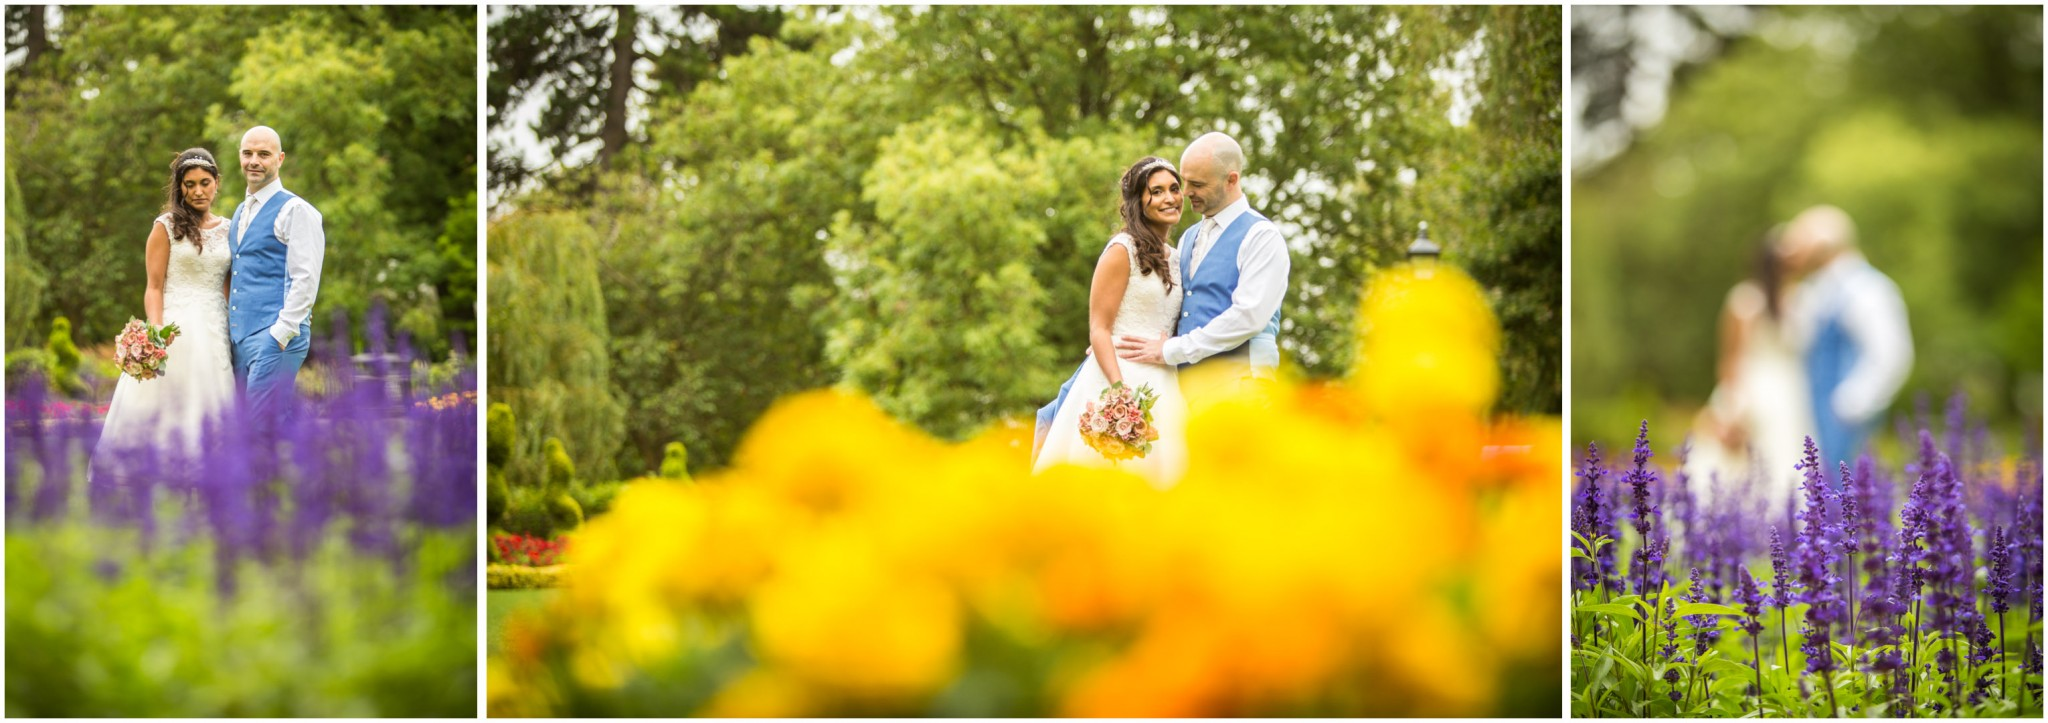 winchester-basing-room-wedding-photography-036